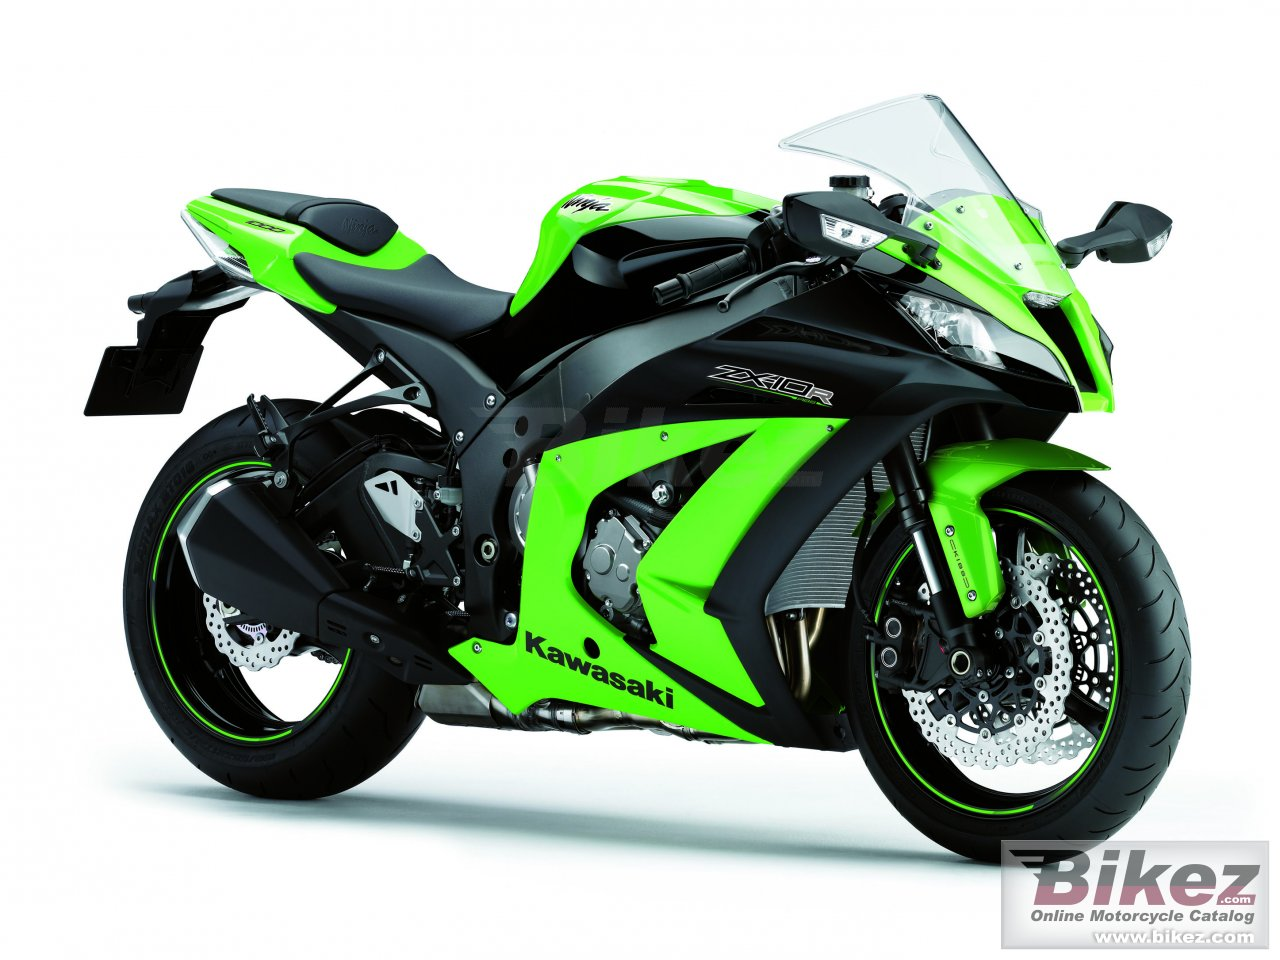 Big Kawasaki ninja zx-10r picture and wallpaper from Bikez.com